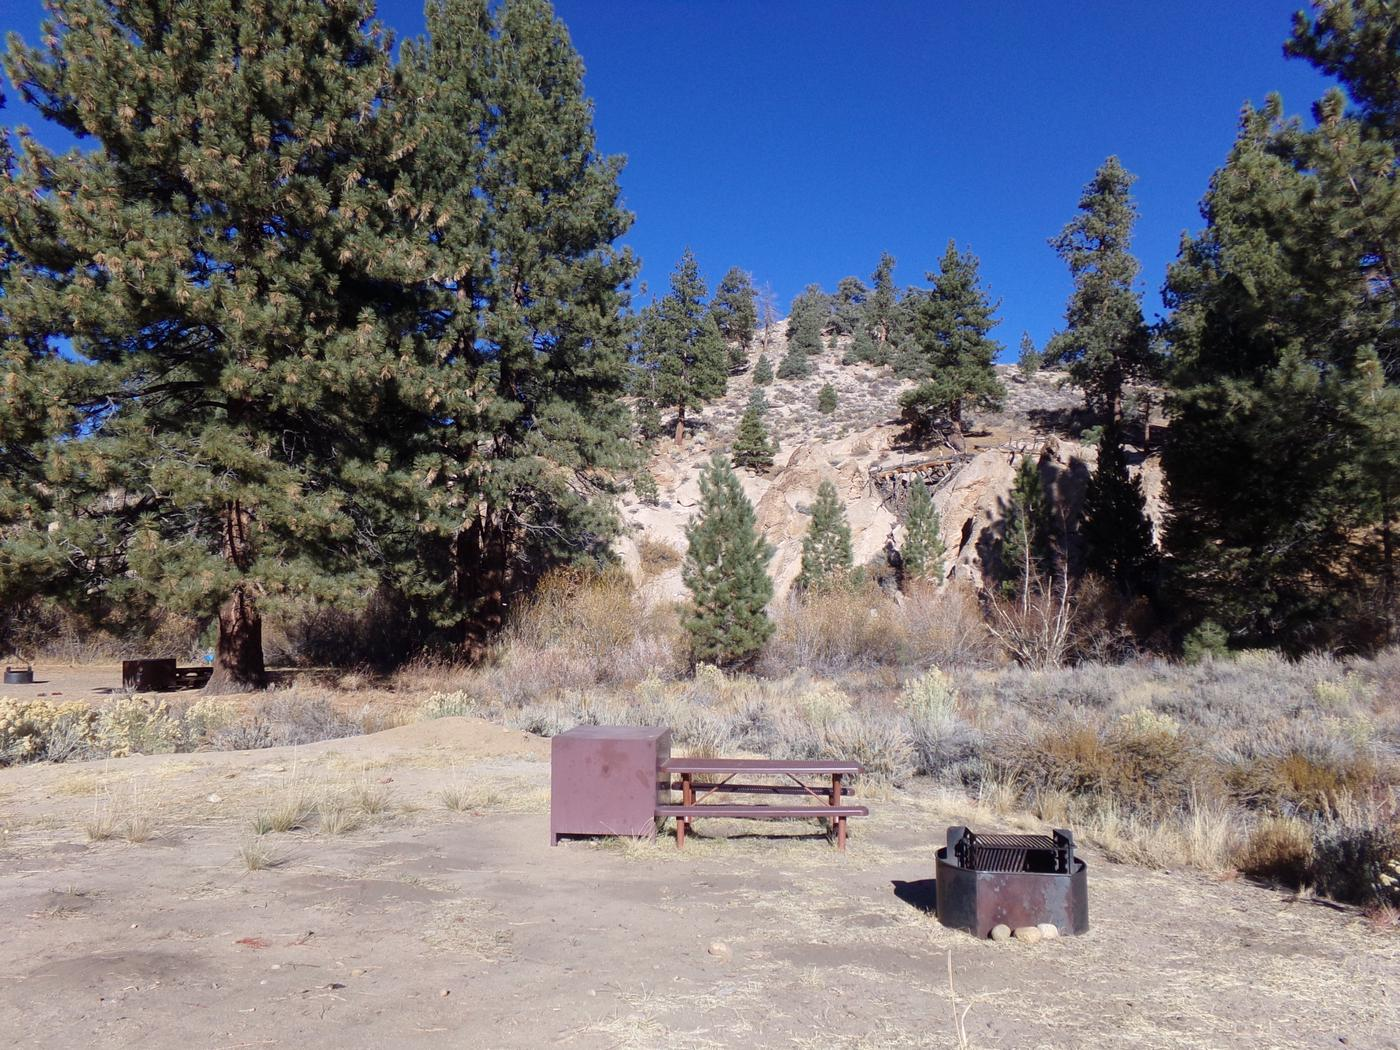 Alternate view of site #32 at Tuff Campground featuring picnic and camping area.